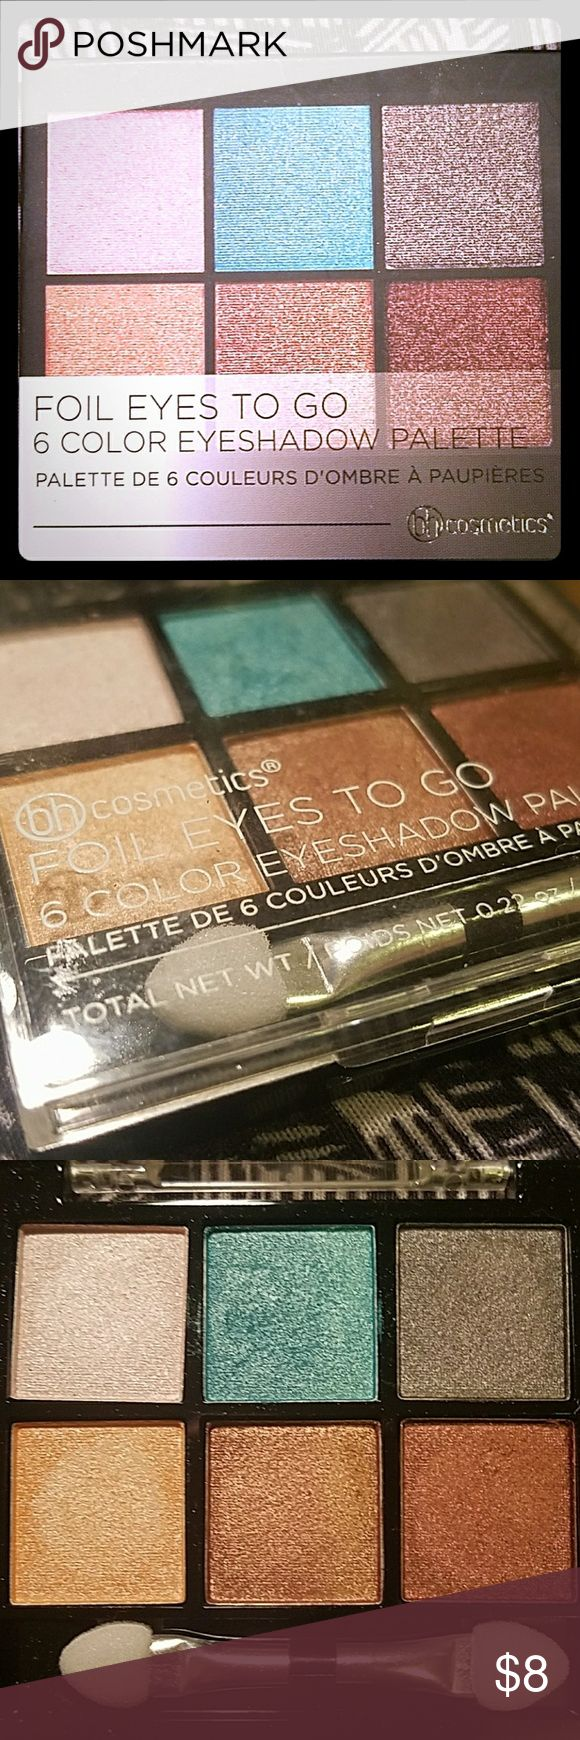 BNIB BH Cosmetics Foil Eyes To Go 6 color eye shadow palette. Opened to swatch and then put back in box. Sanitized and ready to go. Brush never used. Make me an offer or trade. BH Cosmetics  Makeup Eyeshadow